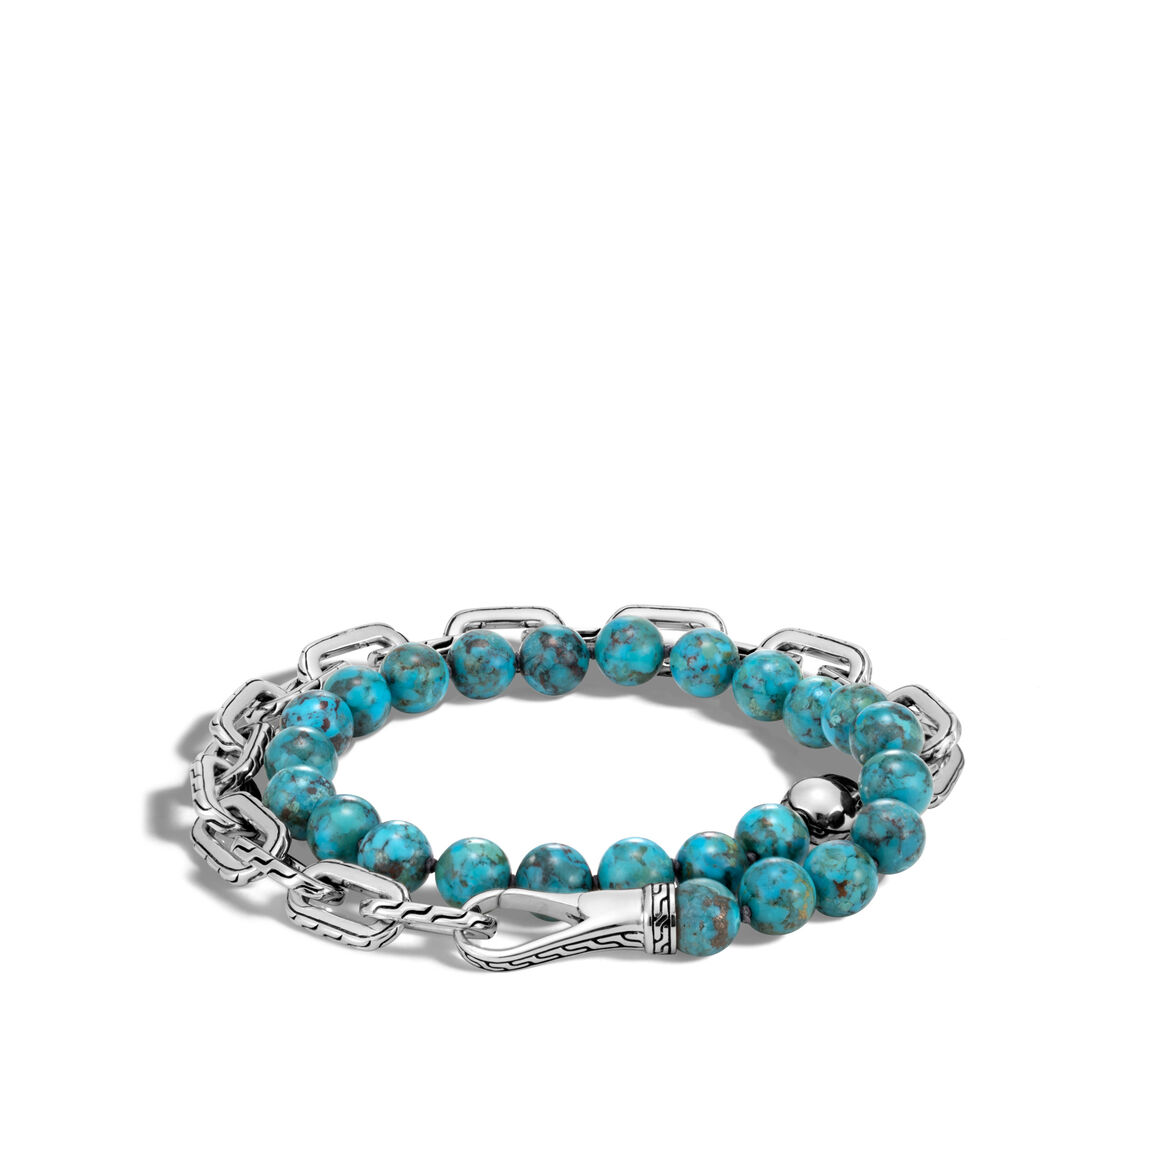 Classic Chain Double Wrap Bracelet in Silver with 8MM Gems